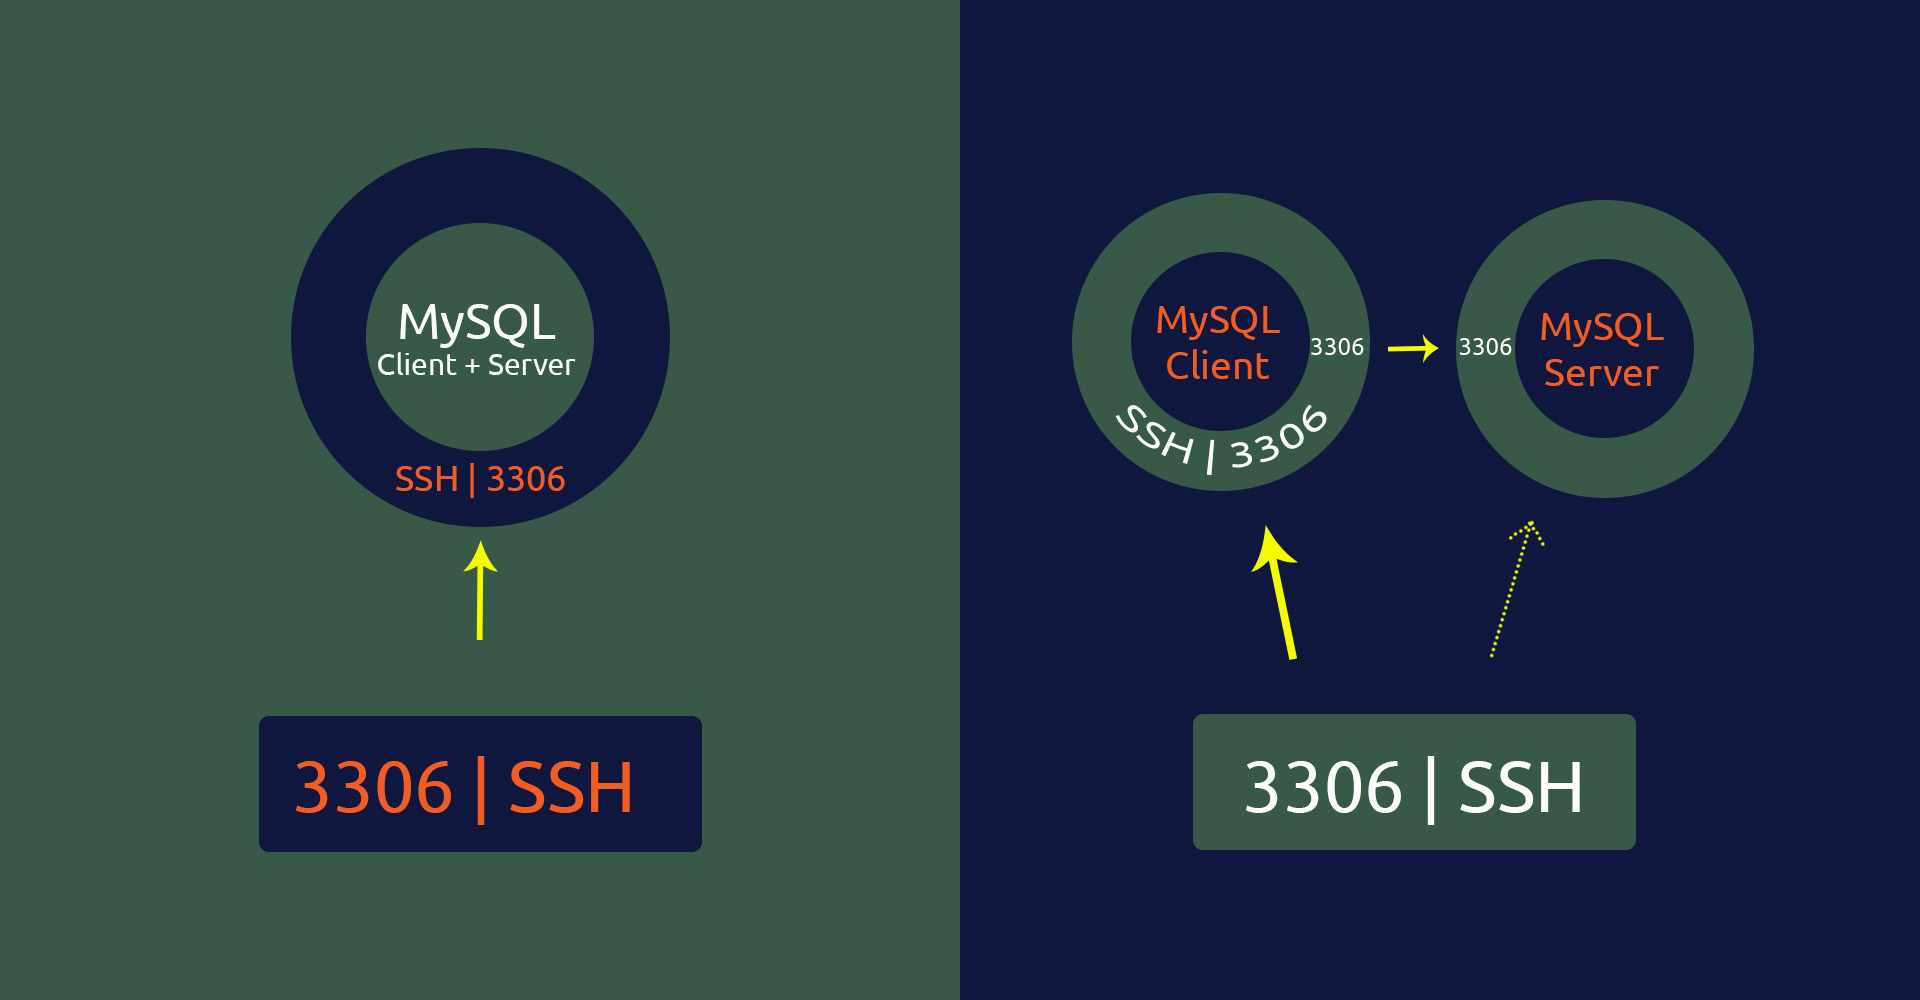 Remotely Access MySQL Server Over SSH Tunnel